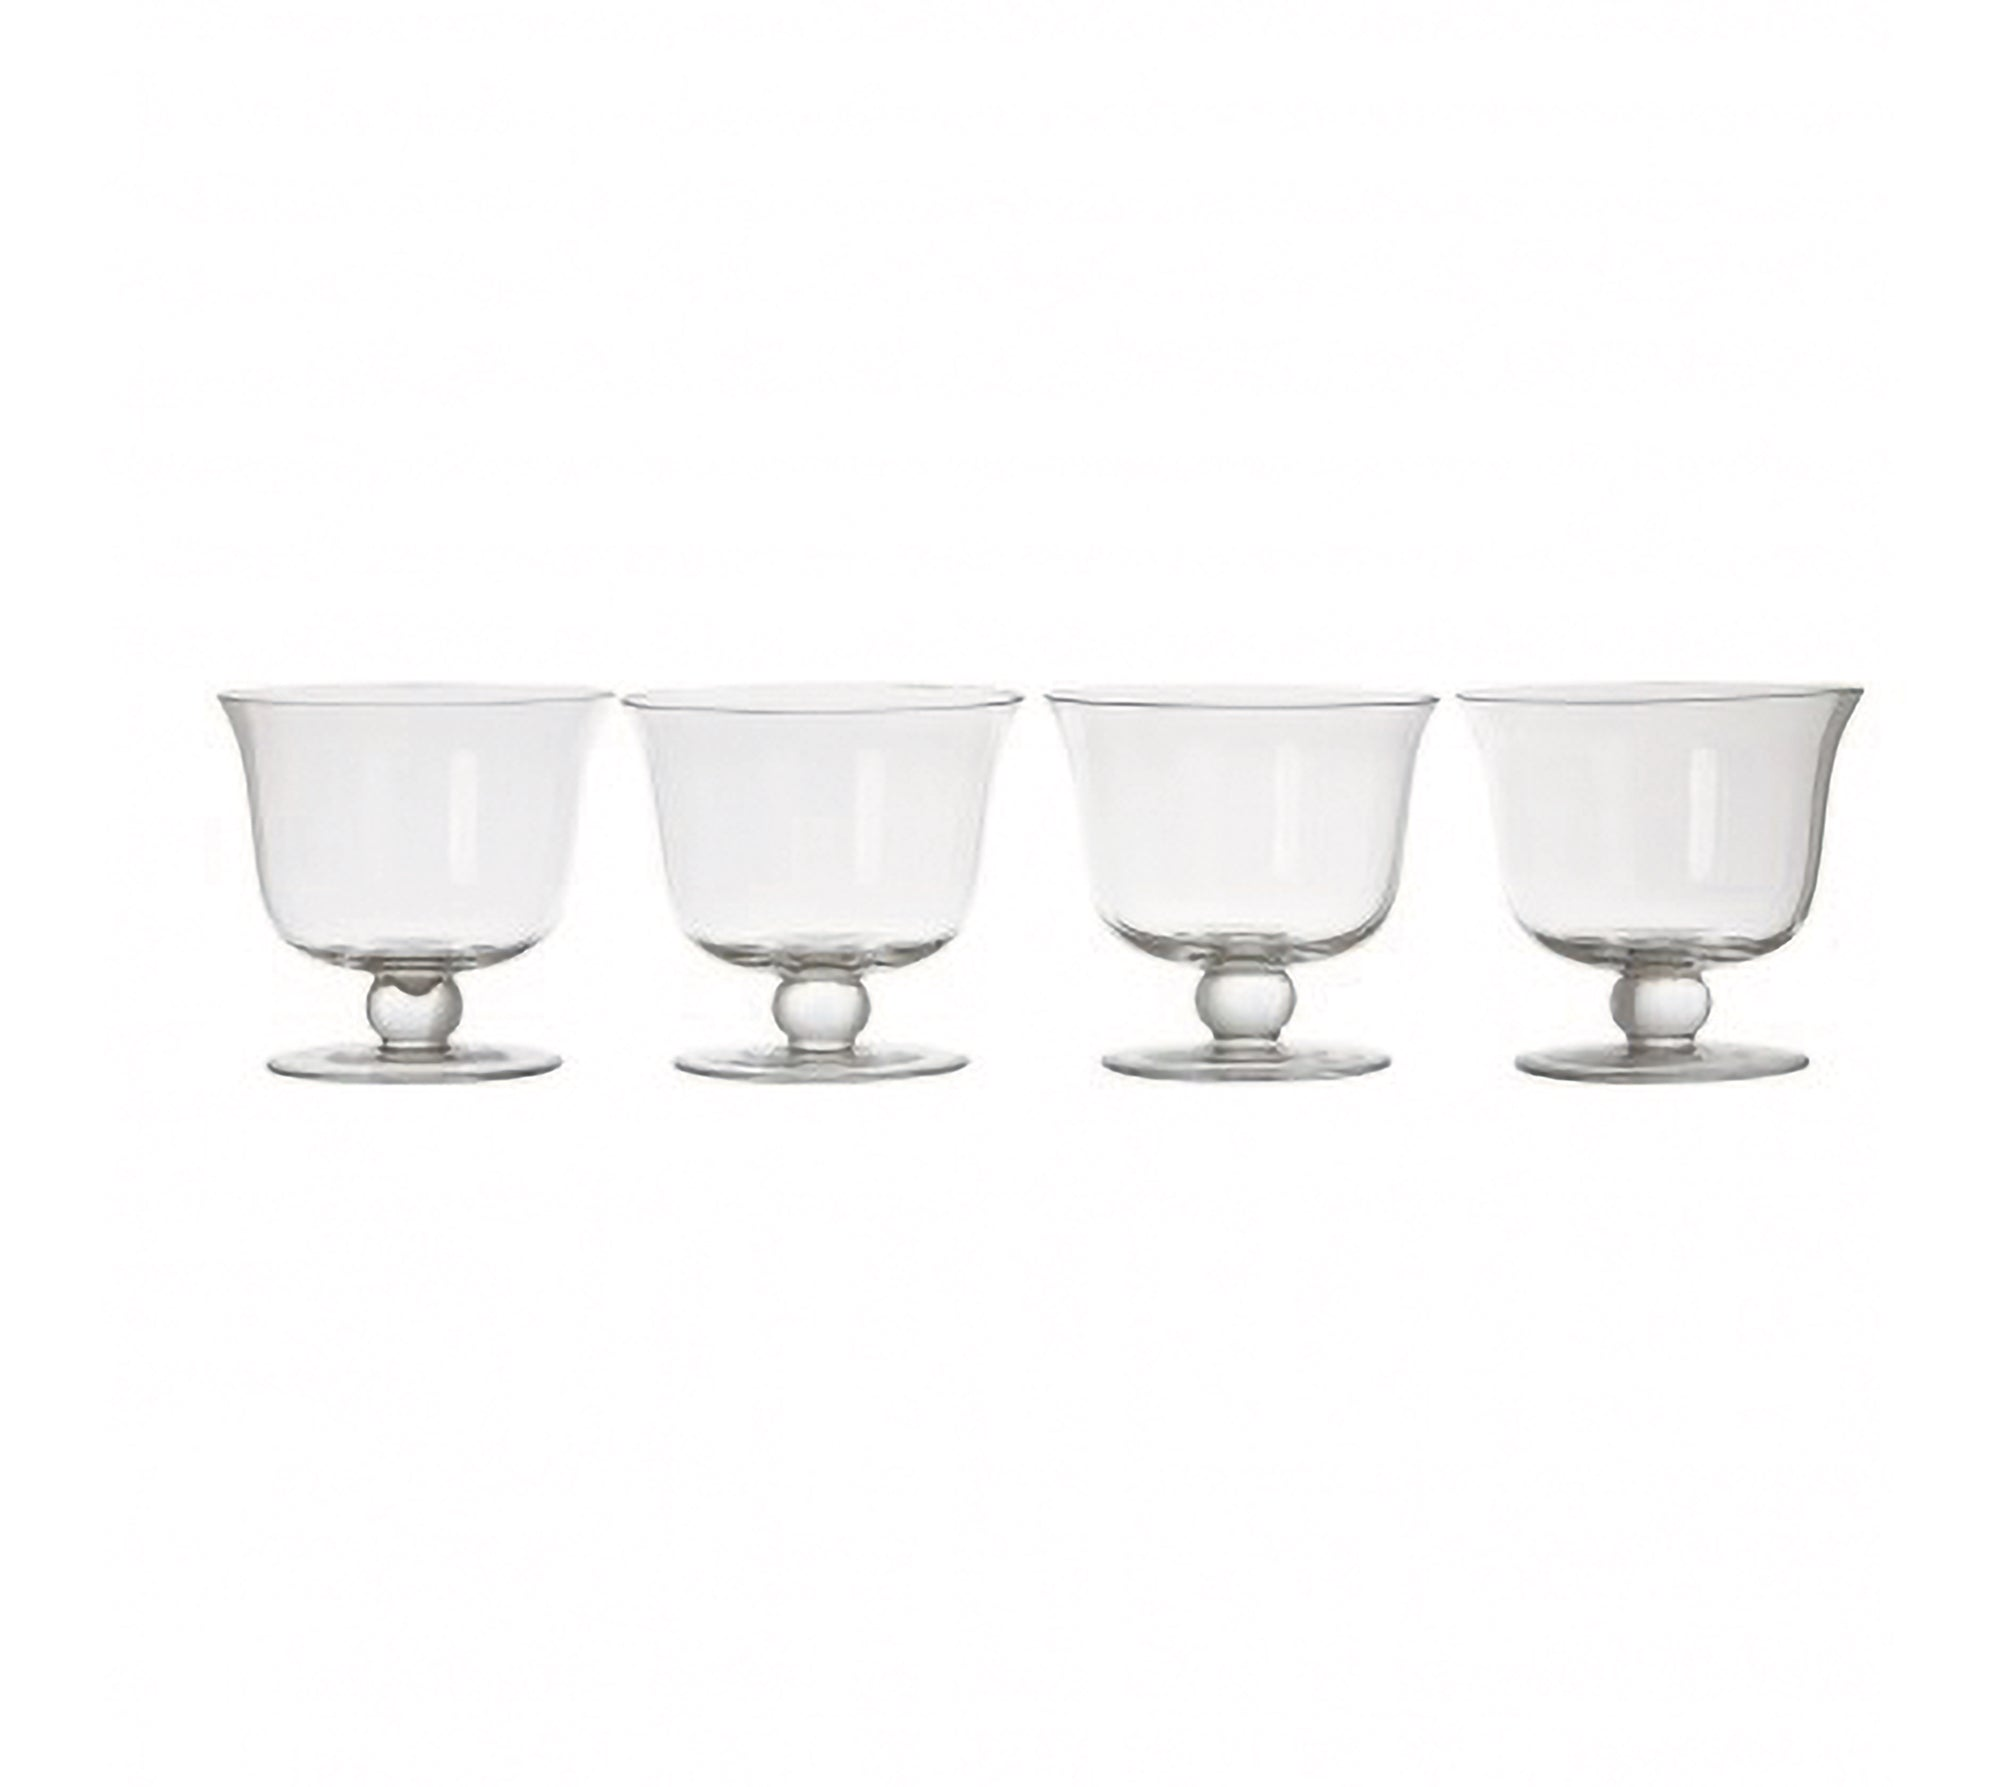 Clear Glass Dessert Dishes - Set of 4